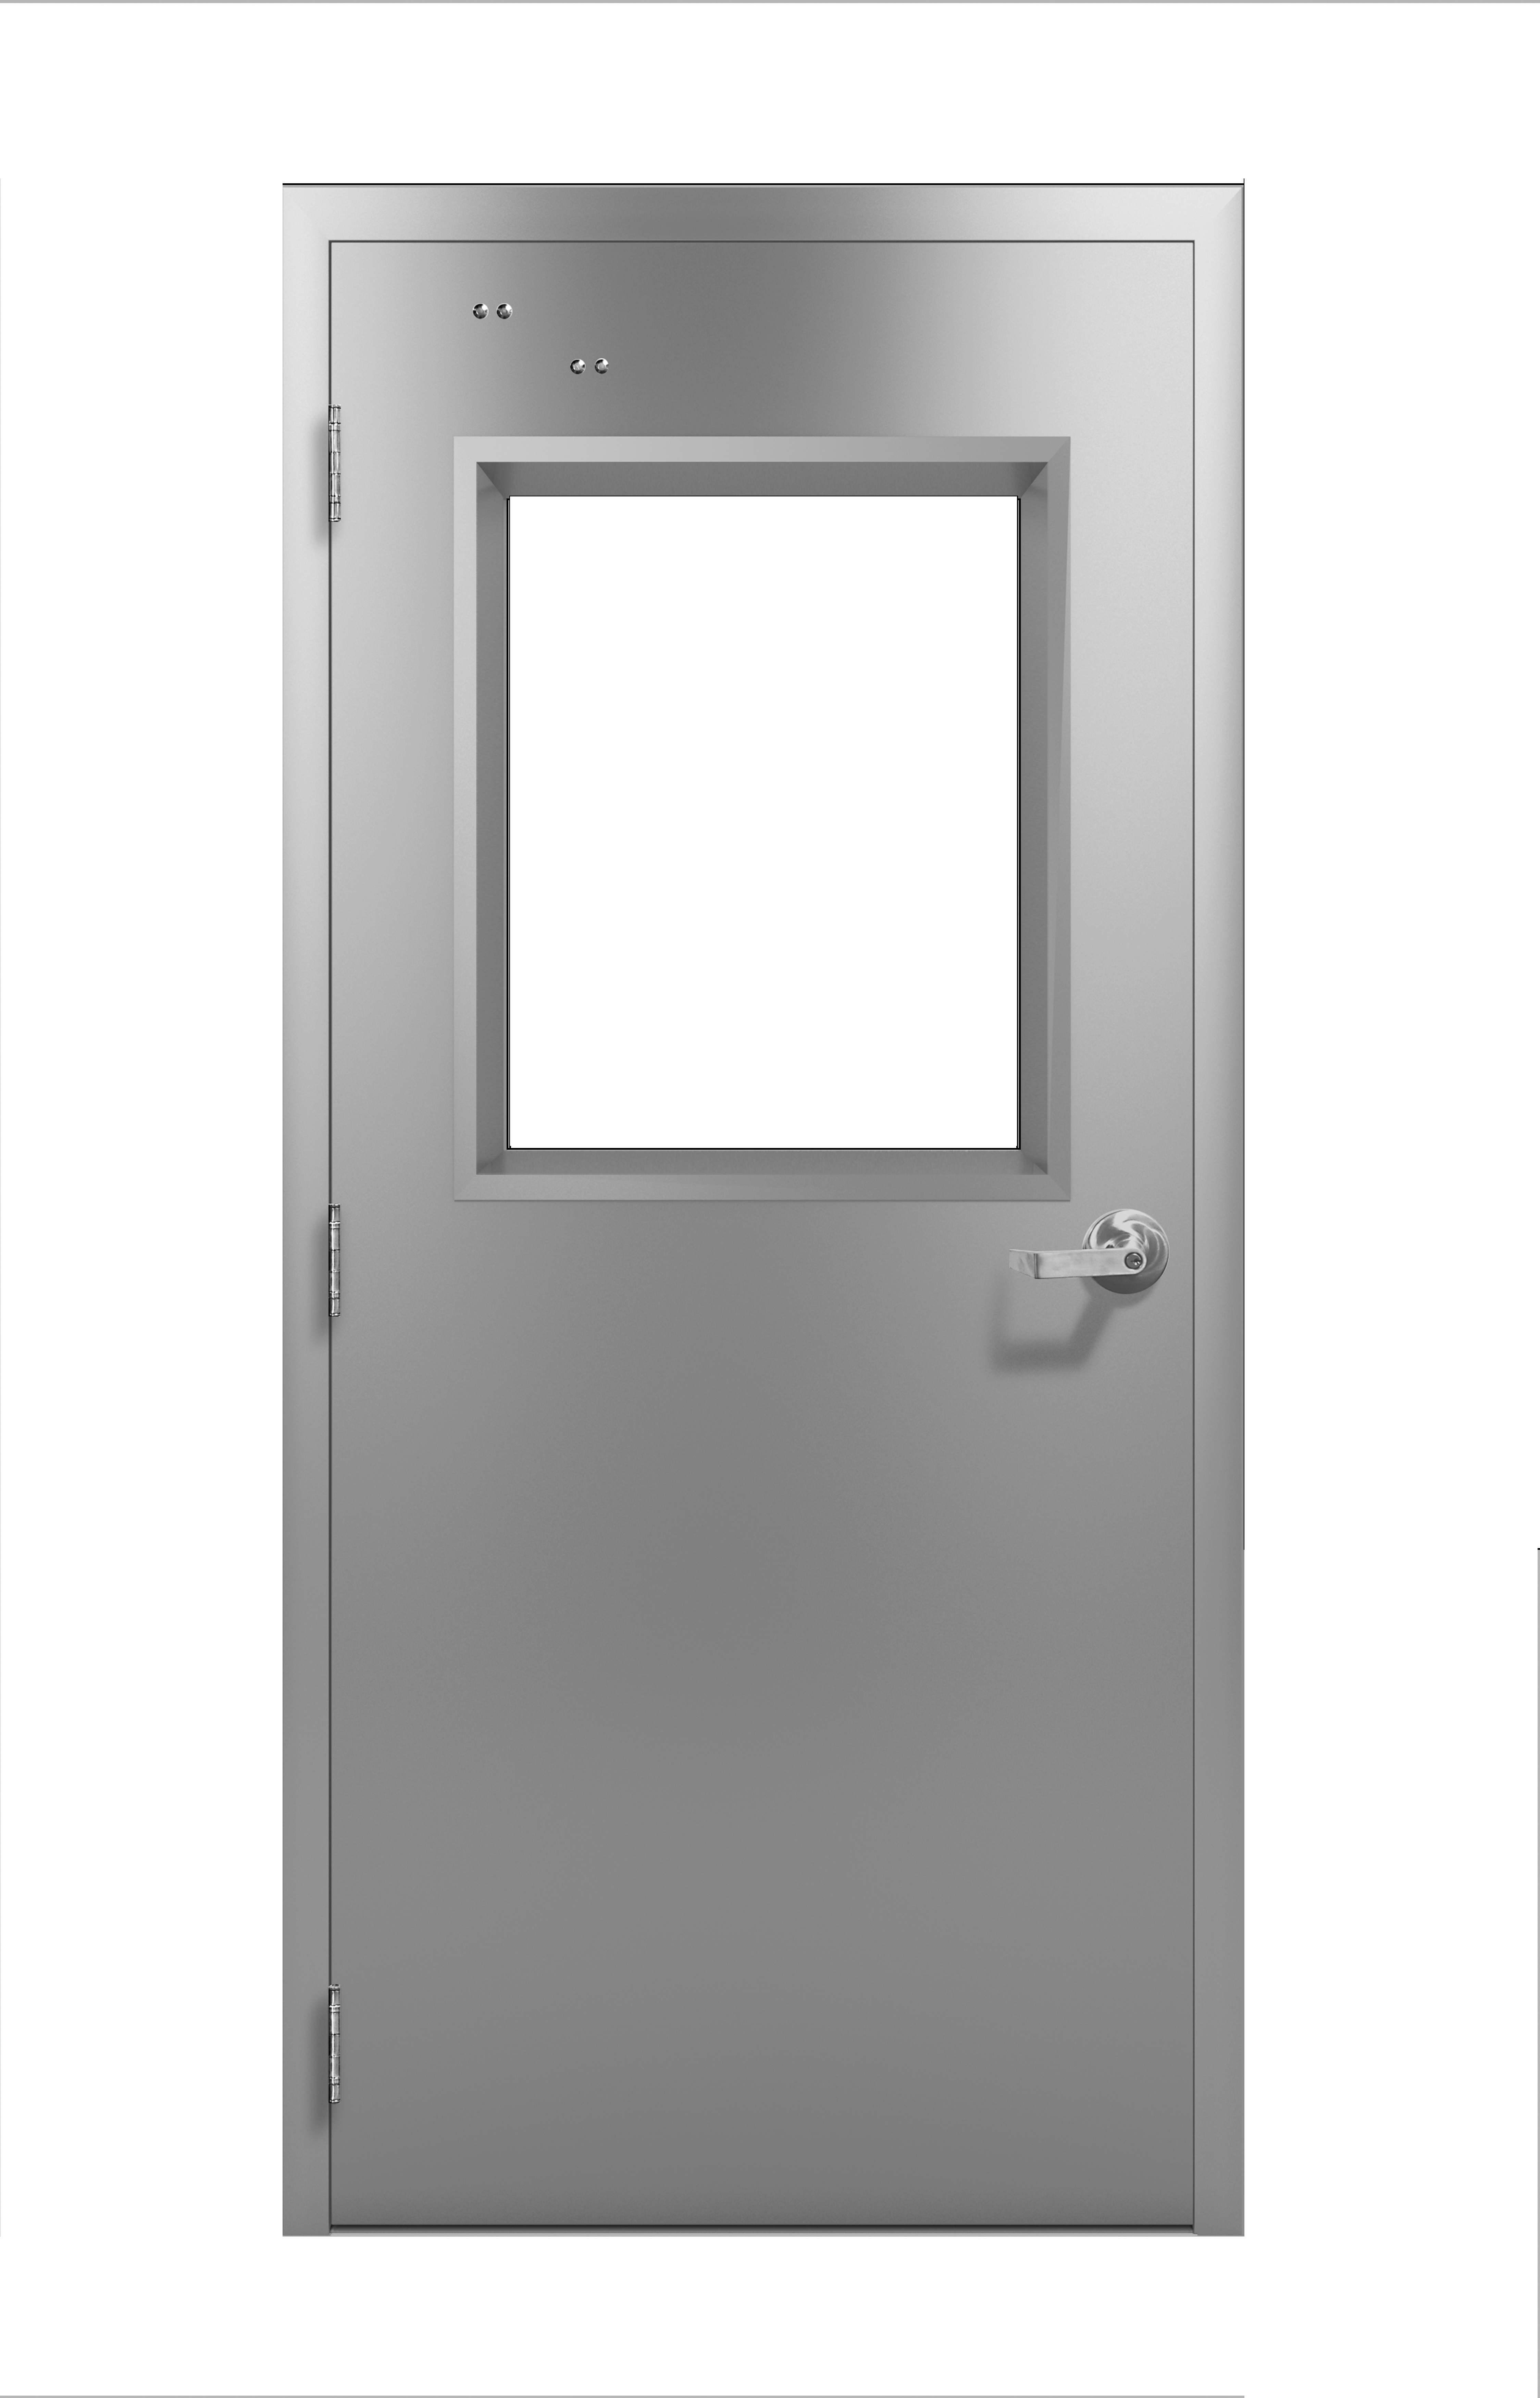 JAMOCLEAN ® Stainless Steel Architectural Style 1 3/4  Swing Door. u0027  sc 1 th 280 & Home | Jamison Door Company